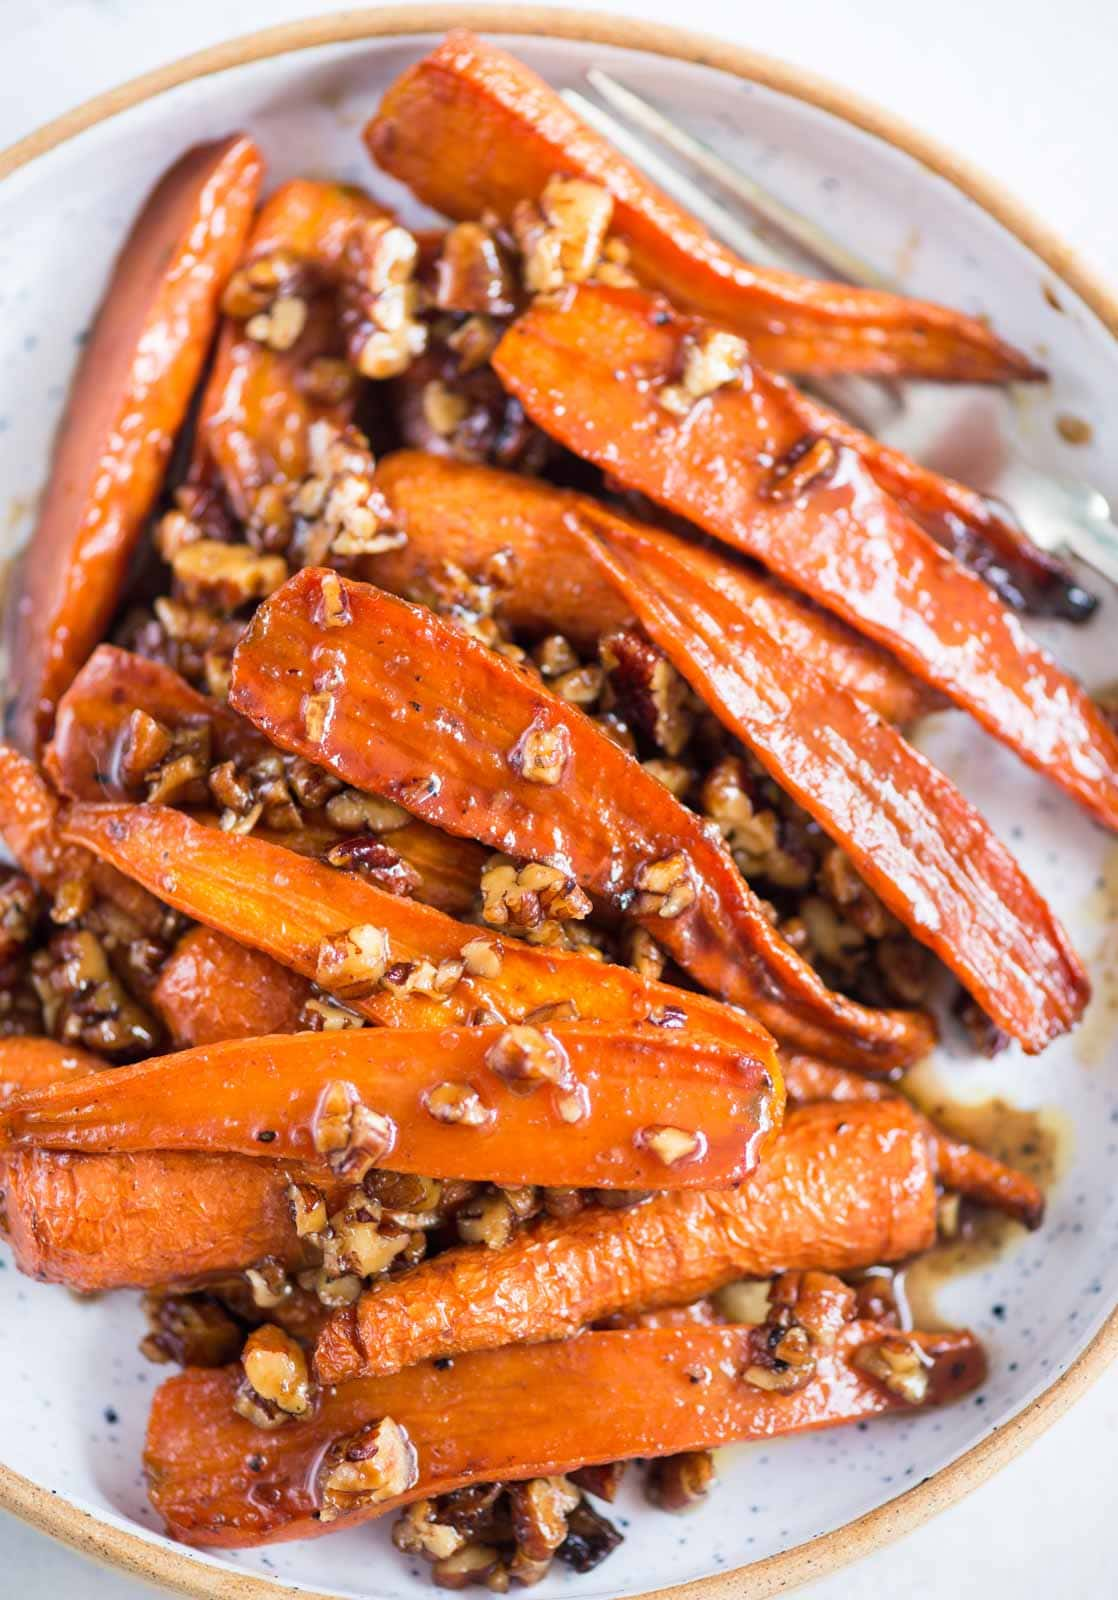 These honey roasted carrot with pecan is a simple yet quite delicious side dish. Carrots tossed in honey, butter, garlic and roasted in the oven until it is tender and slightly caramelized around the edges.